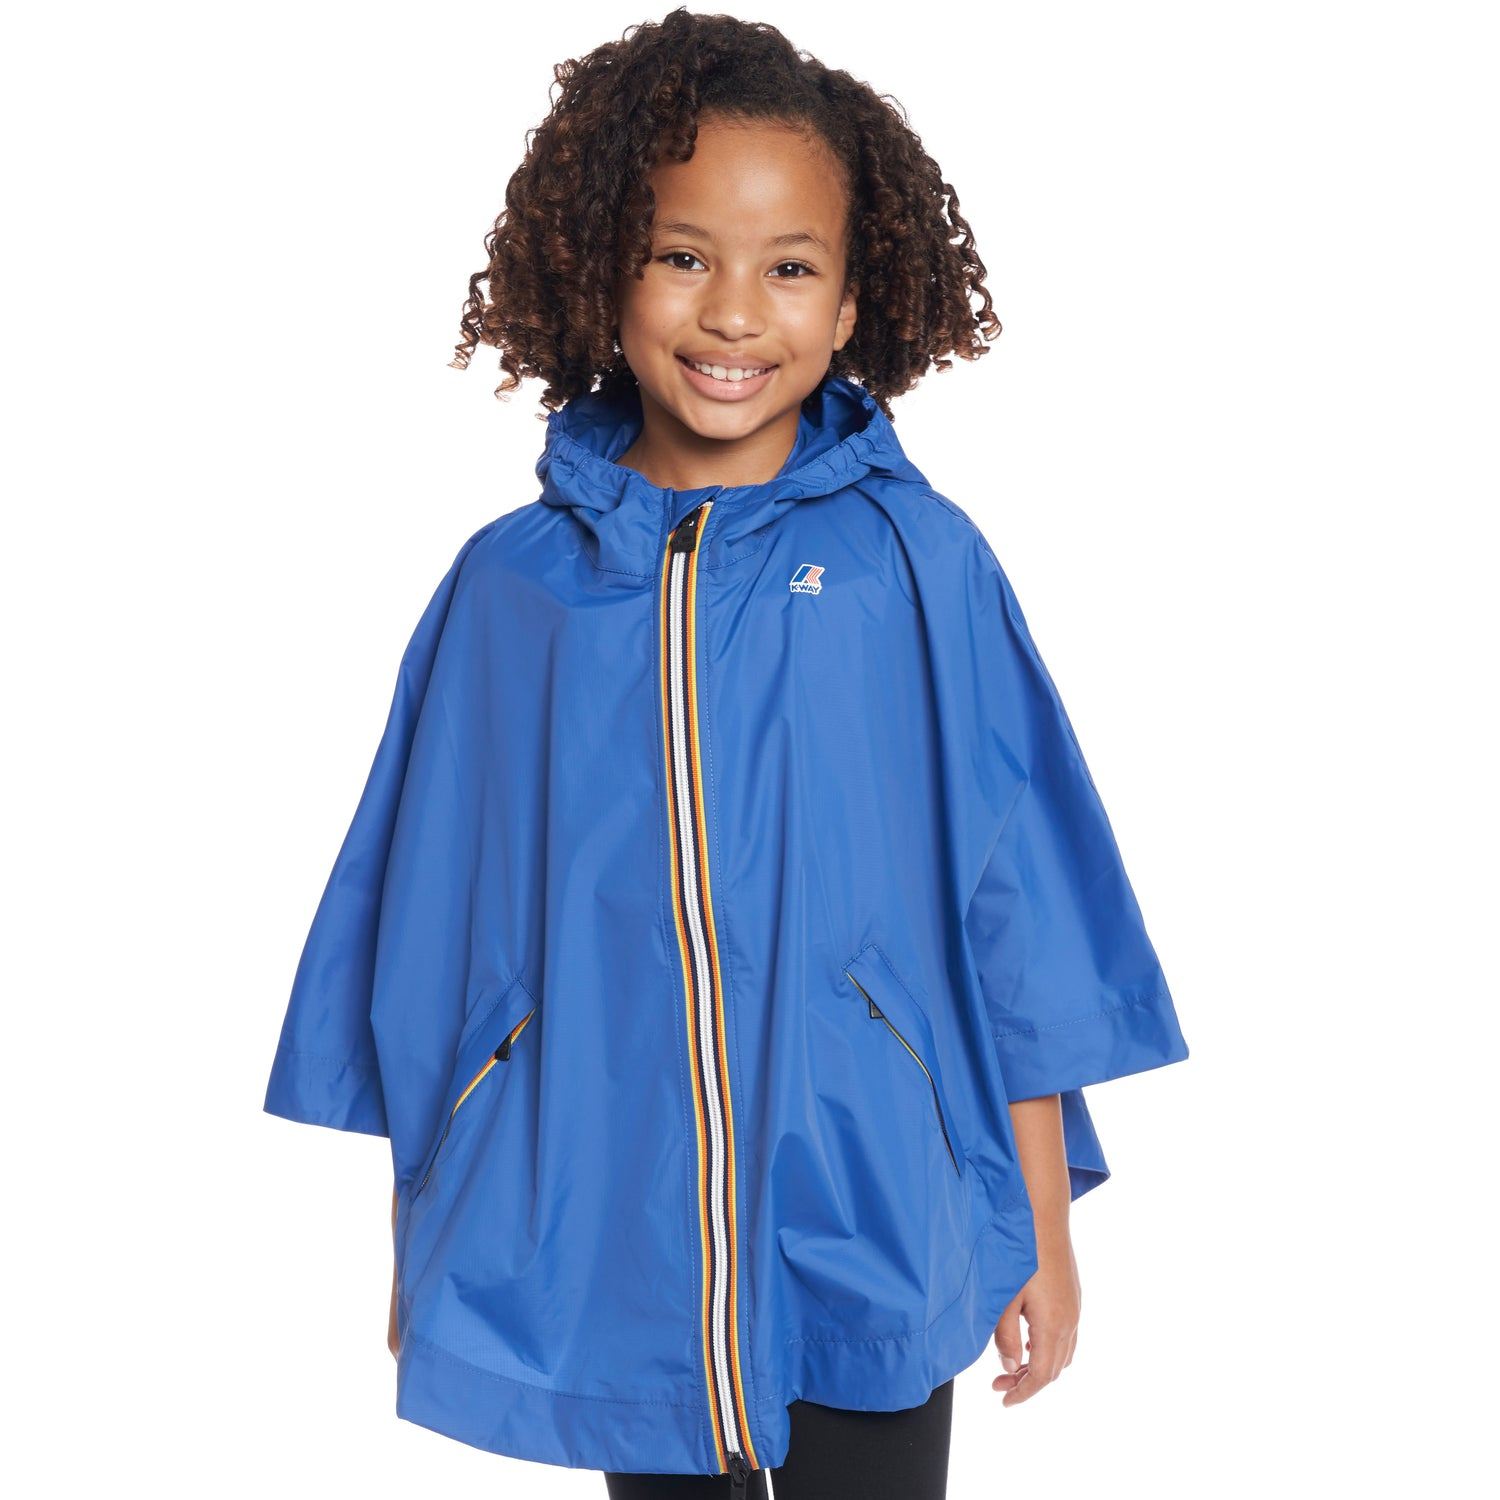 Kids Le Vrai 3.0 Morgan Poncho Blue Royal - Front